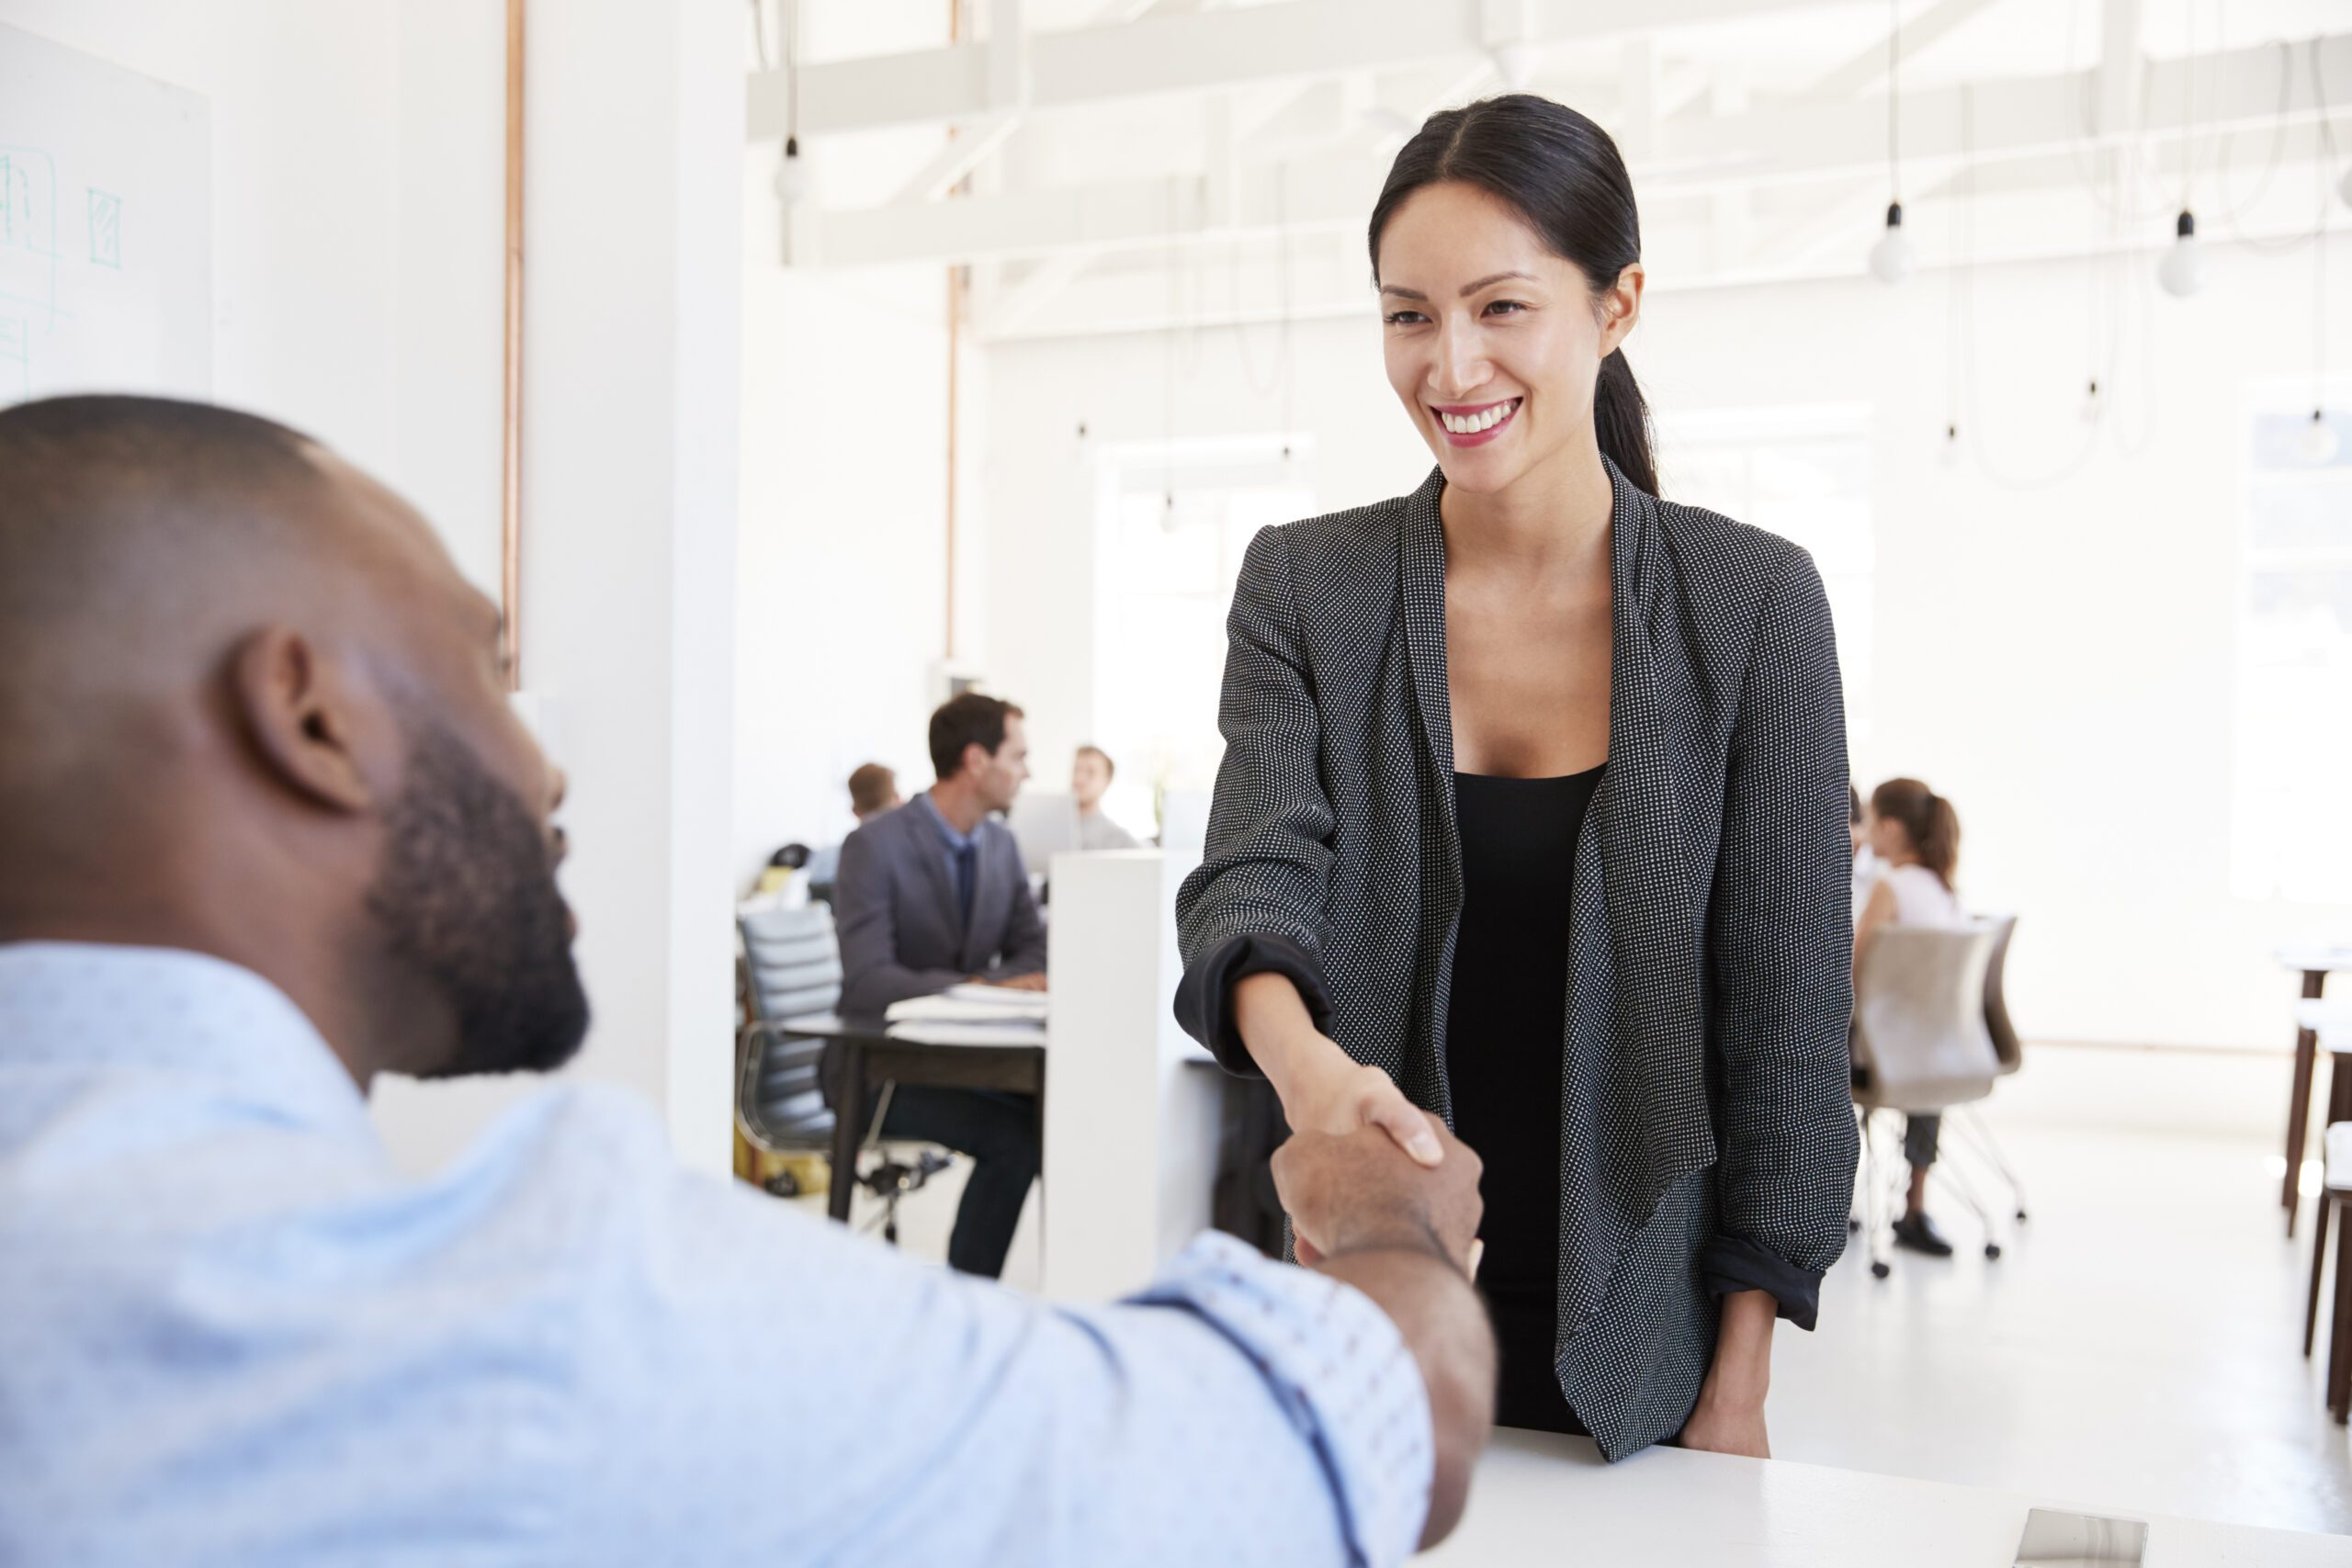 5 Ways To Help Improve Your Networking Skills